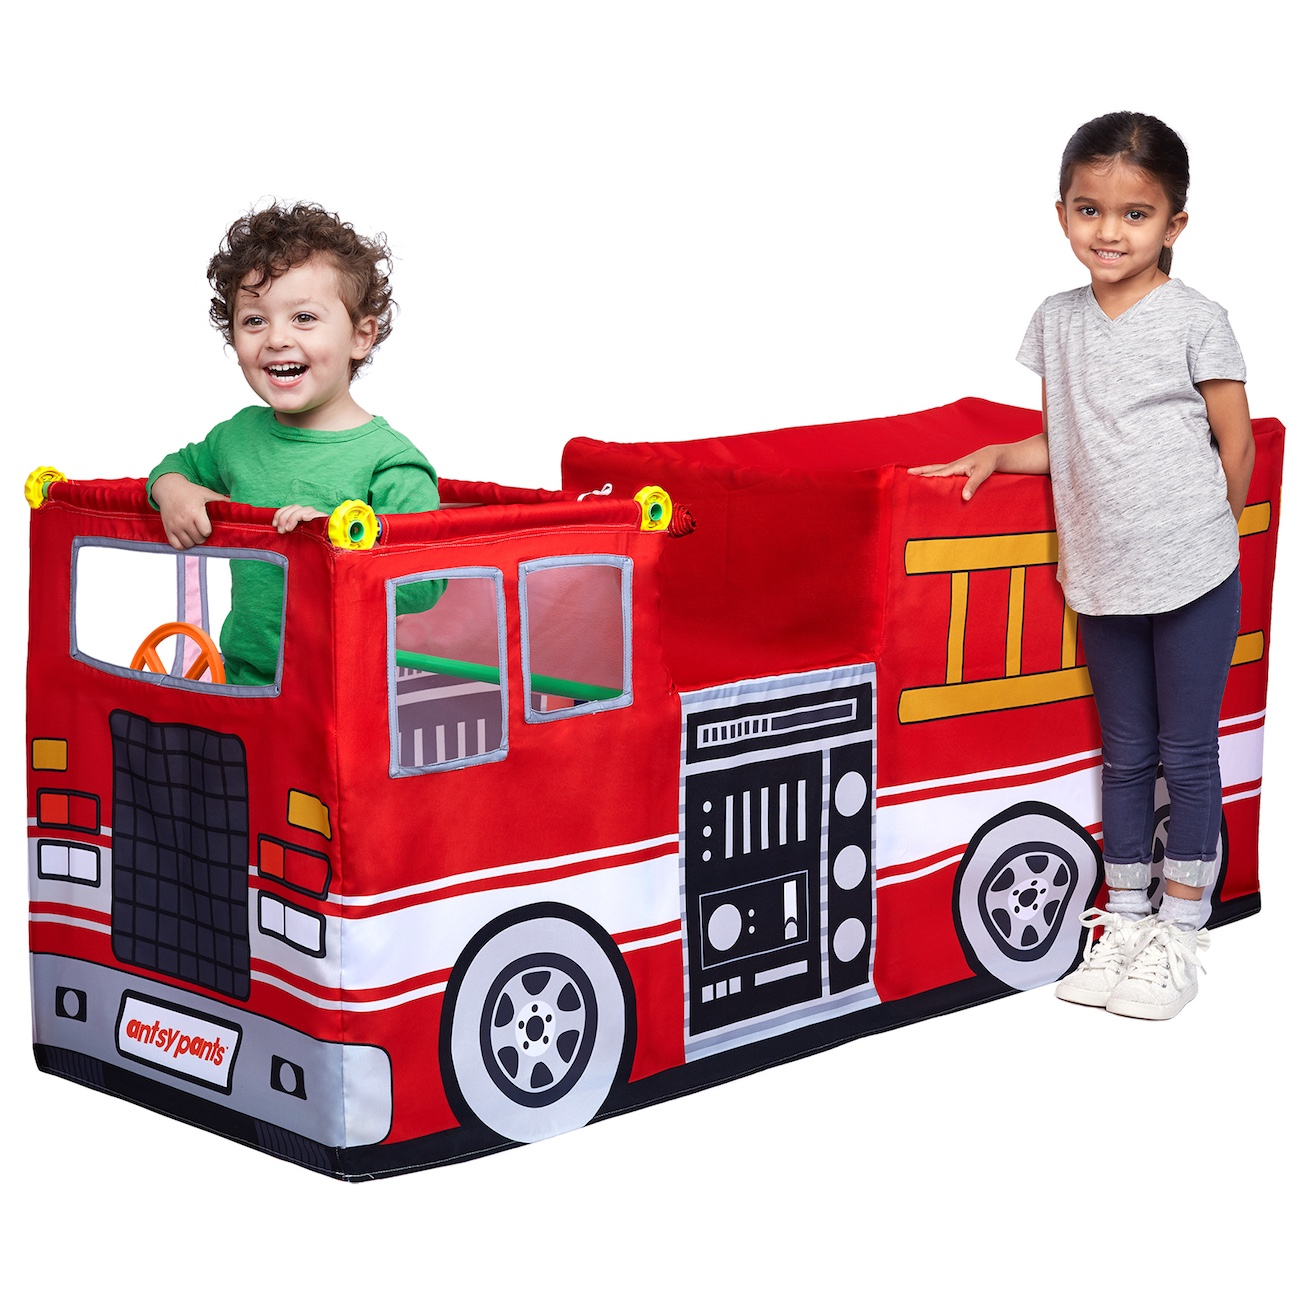 1300x1300 Antsy Pants Build And Play Fire Truck